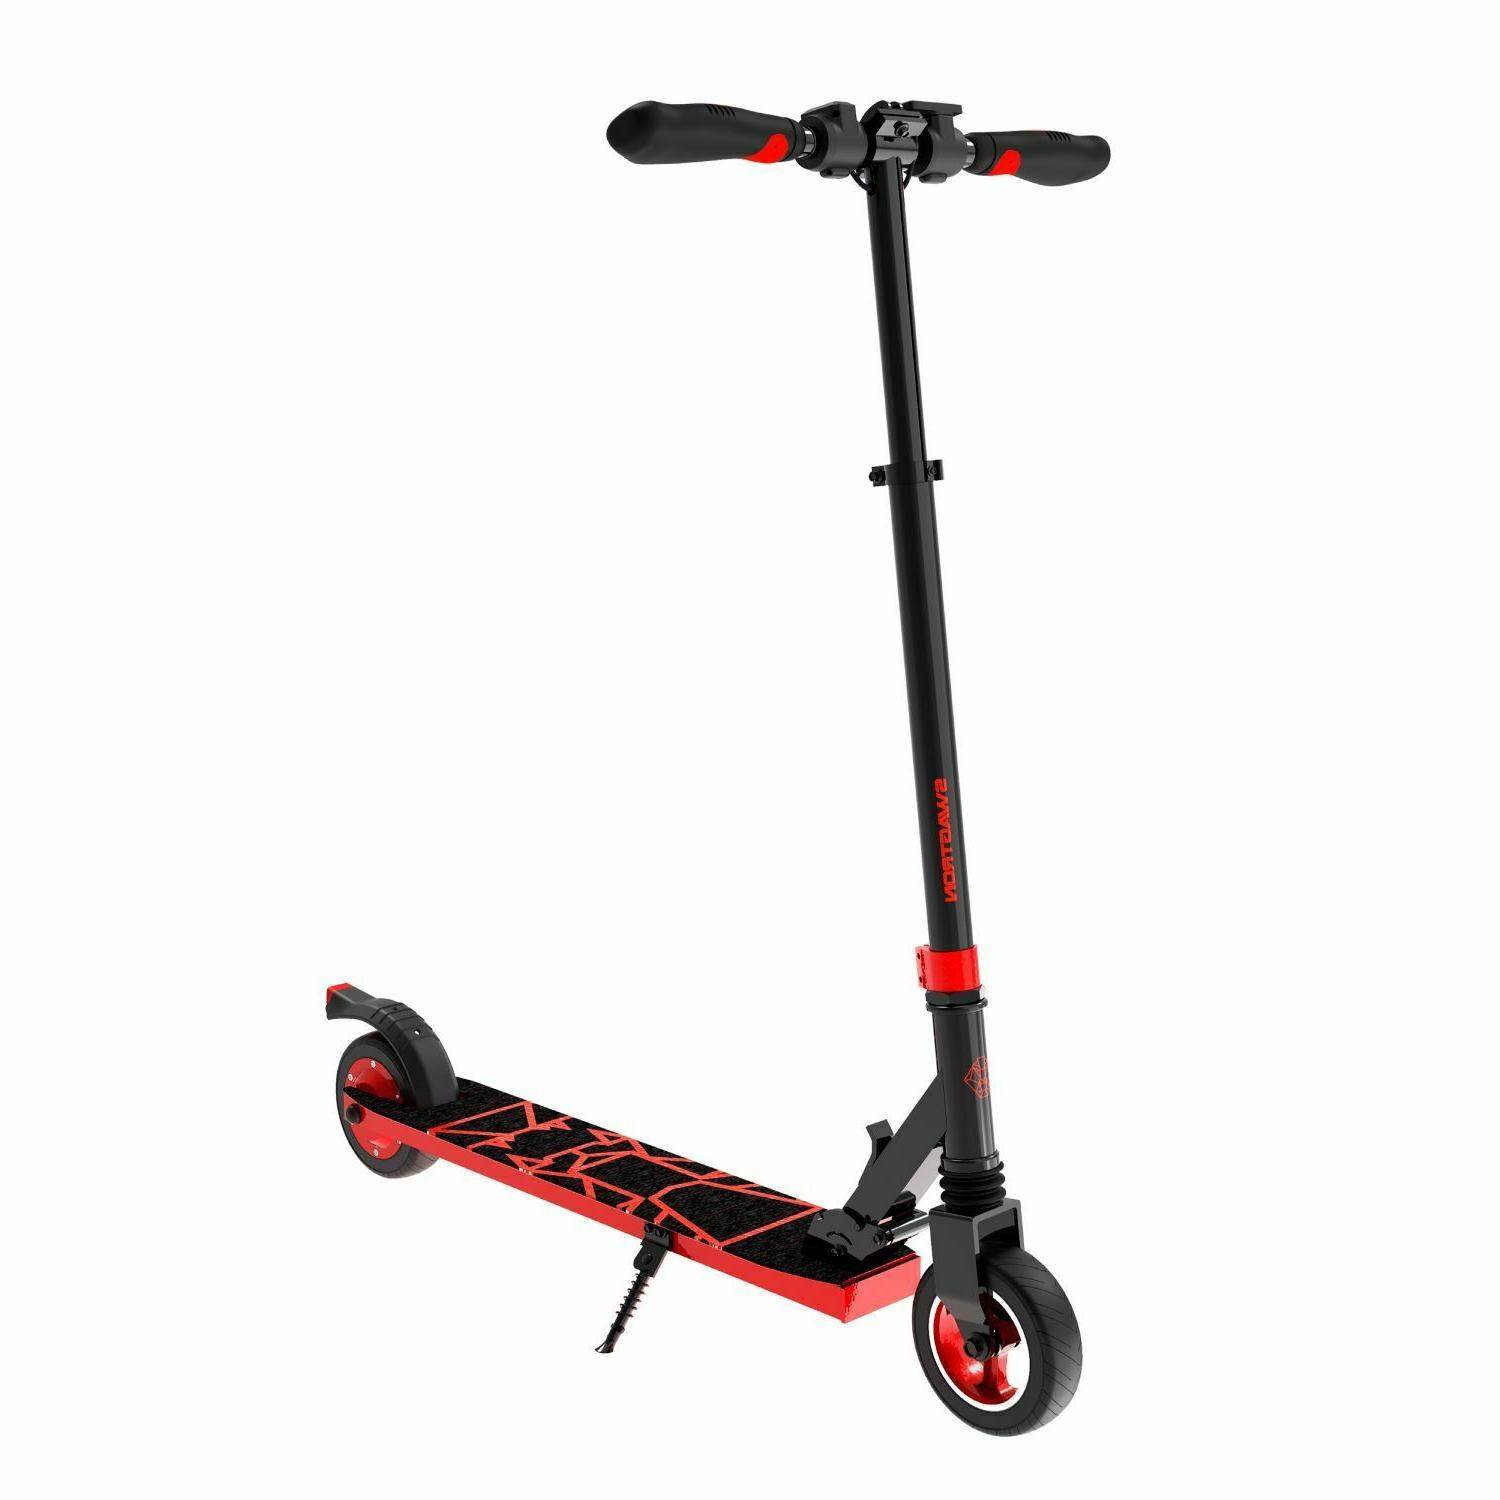 swagger 8 folding electric scooter for kids